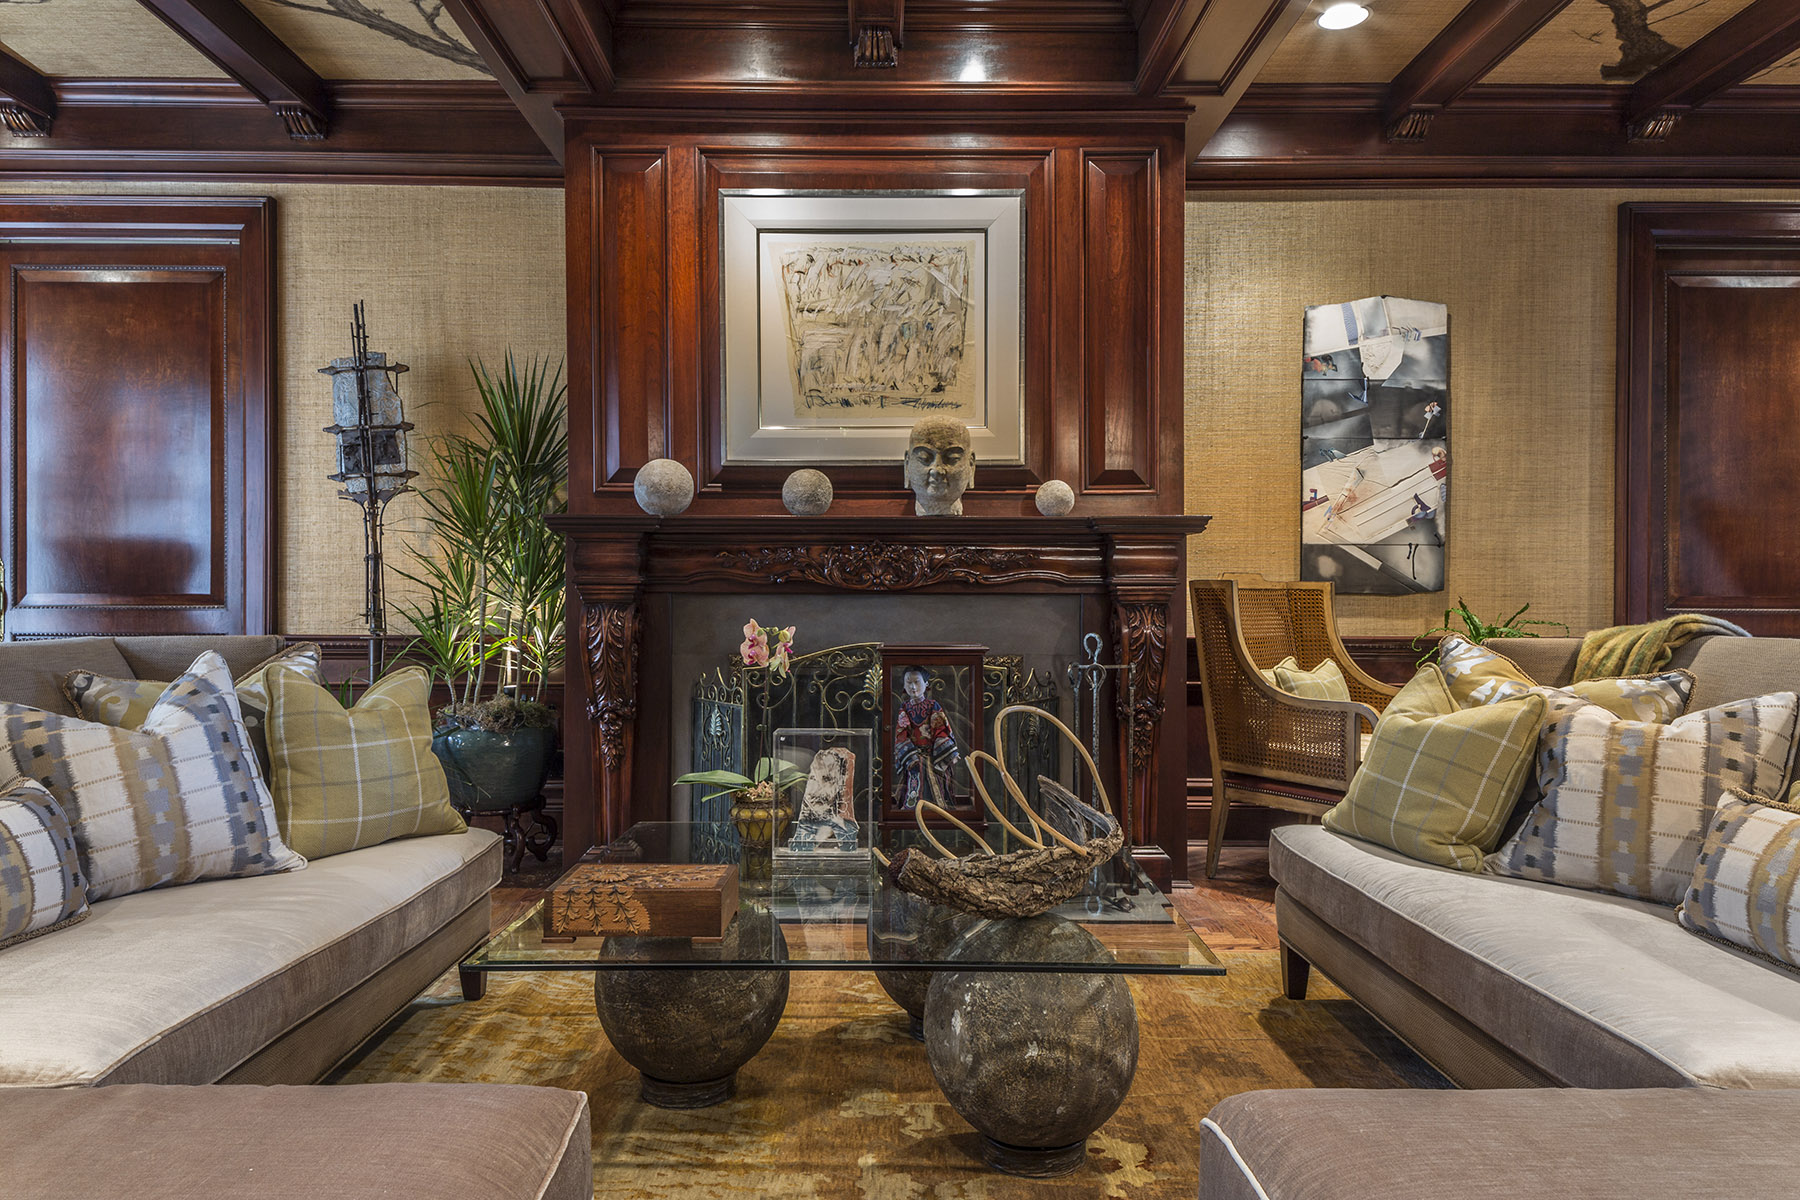 Timeless Interior Design a strong case for designing timeless interiors